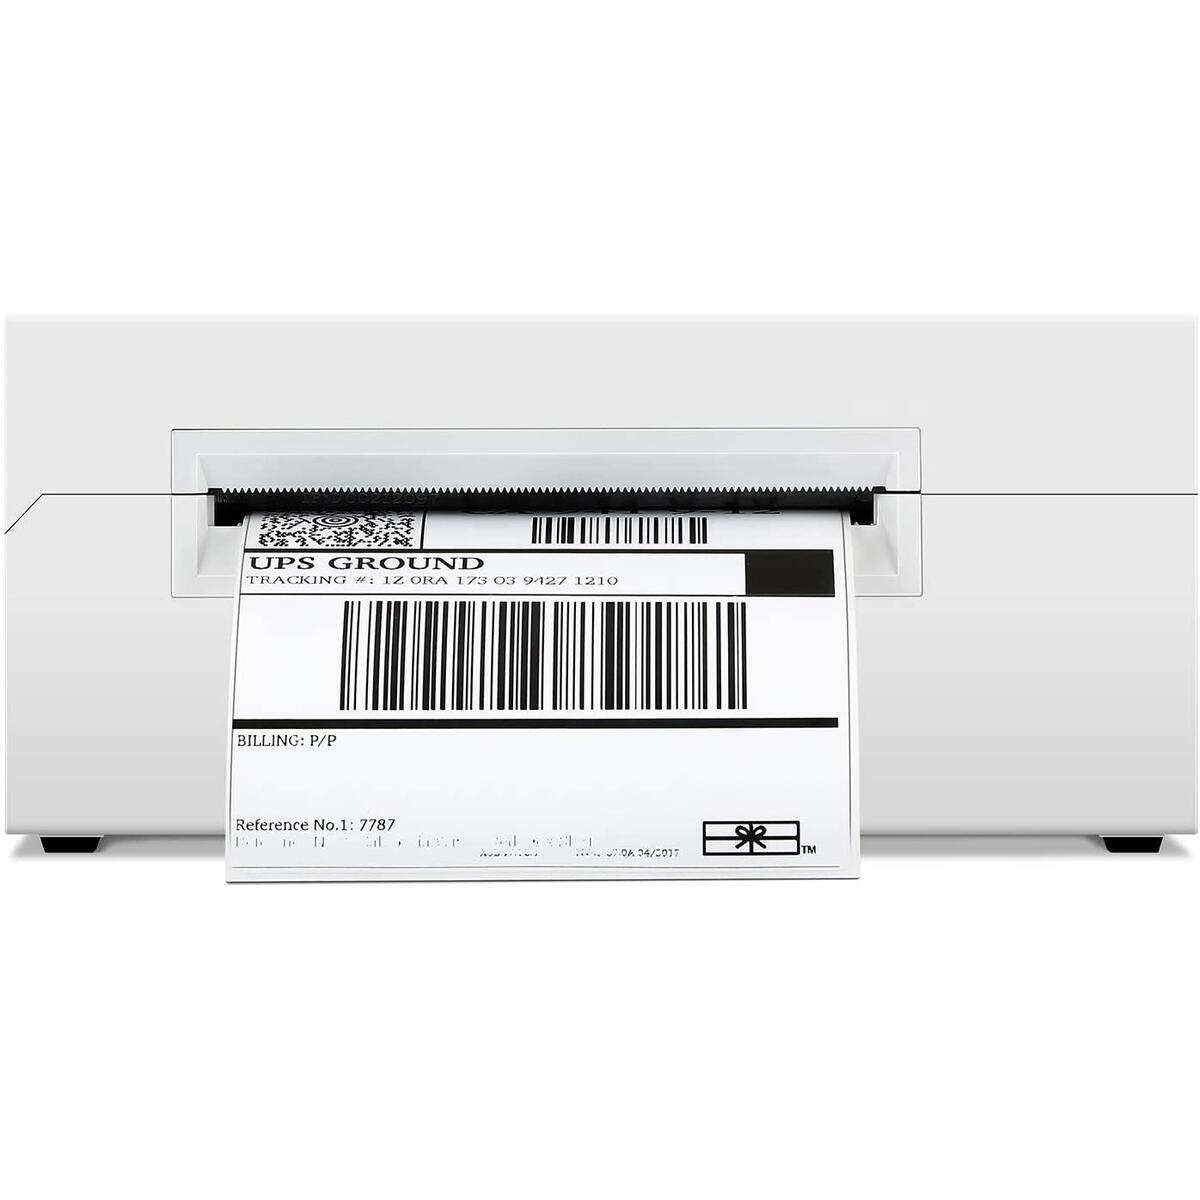 DL-770D (Verison 2.0) Thermal Label Printer for Shippping Package, Print width 1.7 - 4.25 inches, Mac OS & Windows Compatible